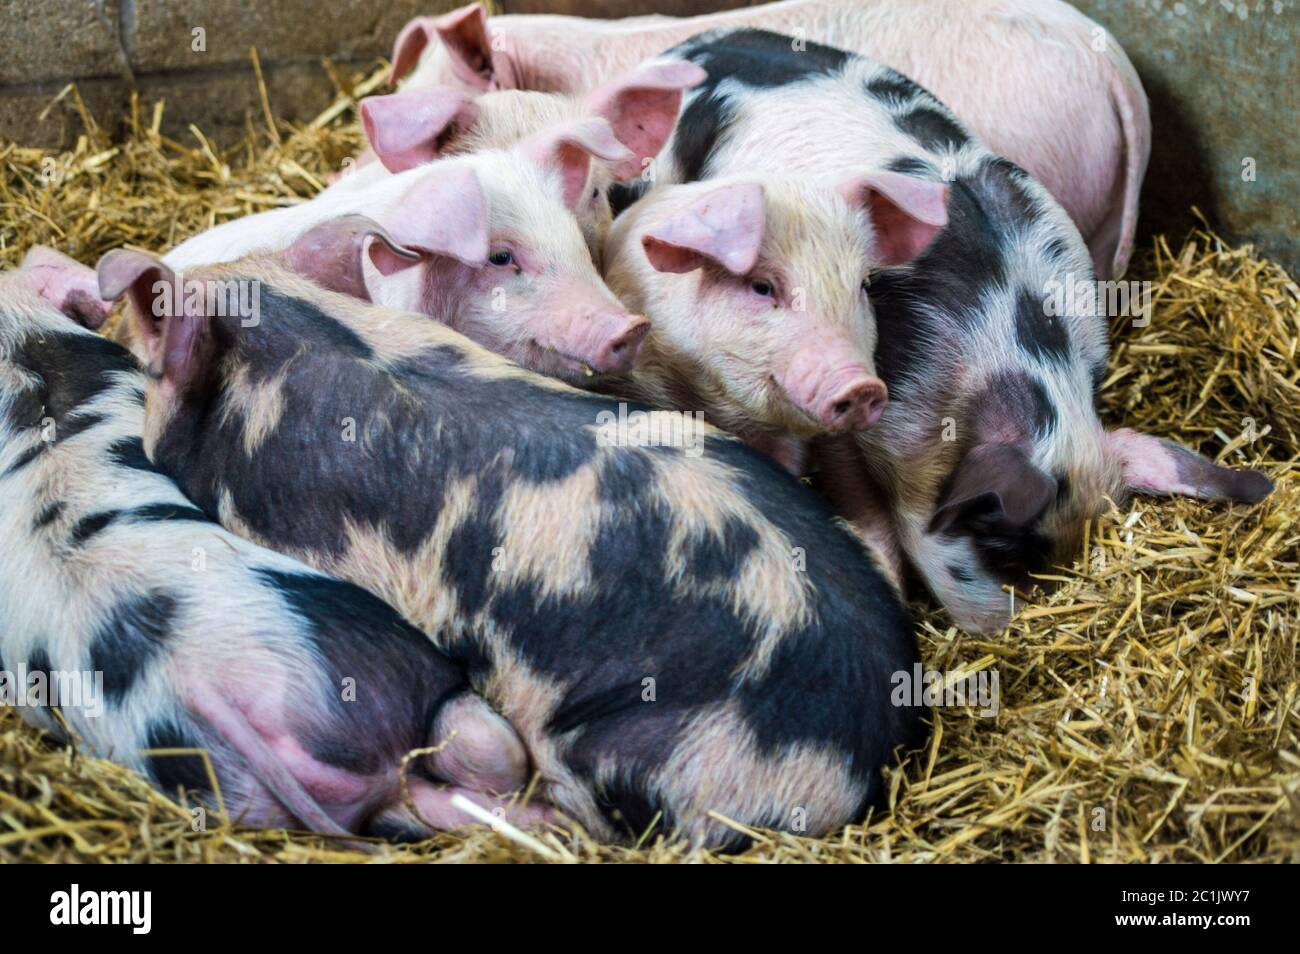 A litter of Gloucester Old Spot piglets bundled together in their sty. Berkshire farm, springtime. Stock Photo